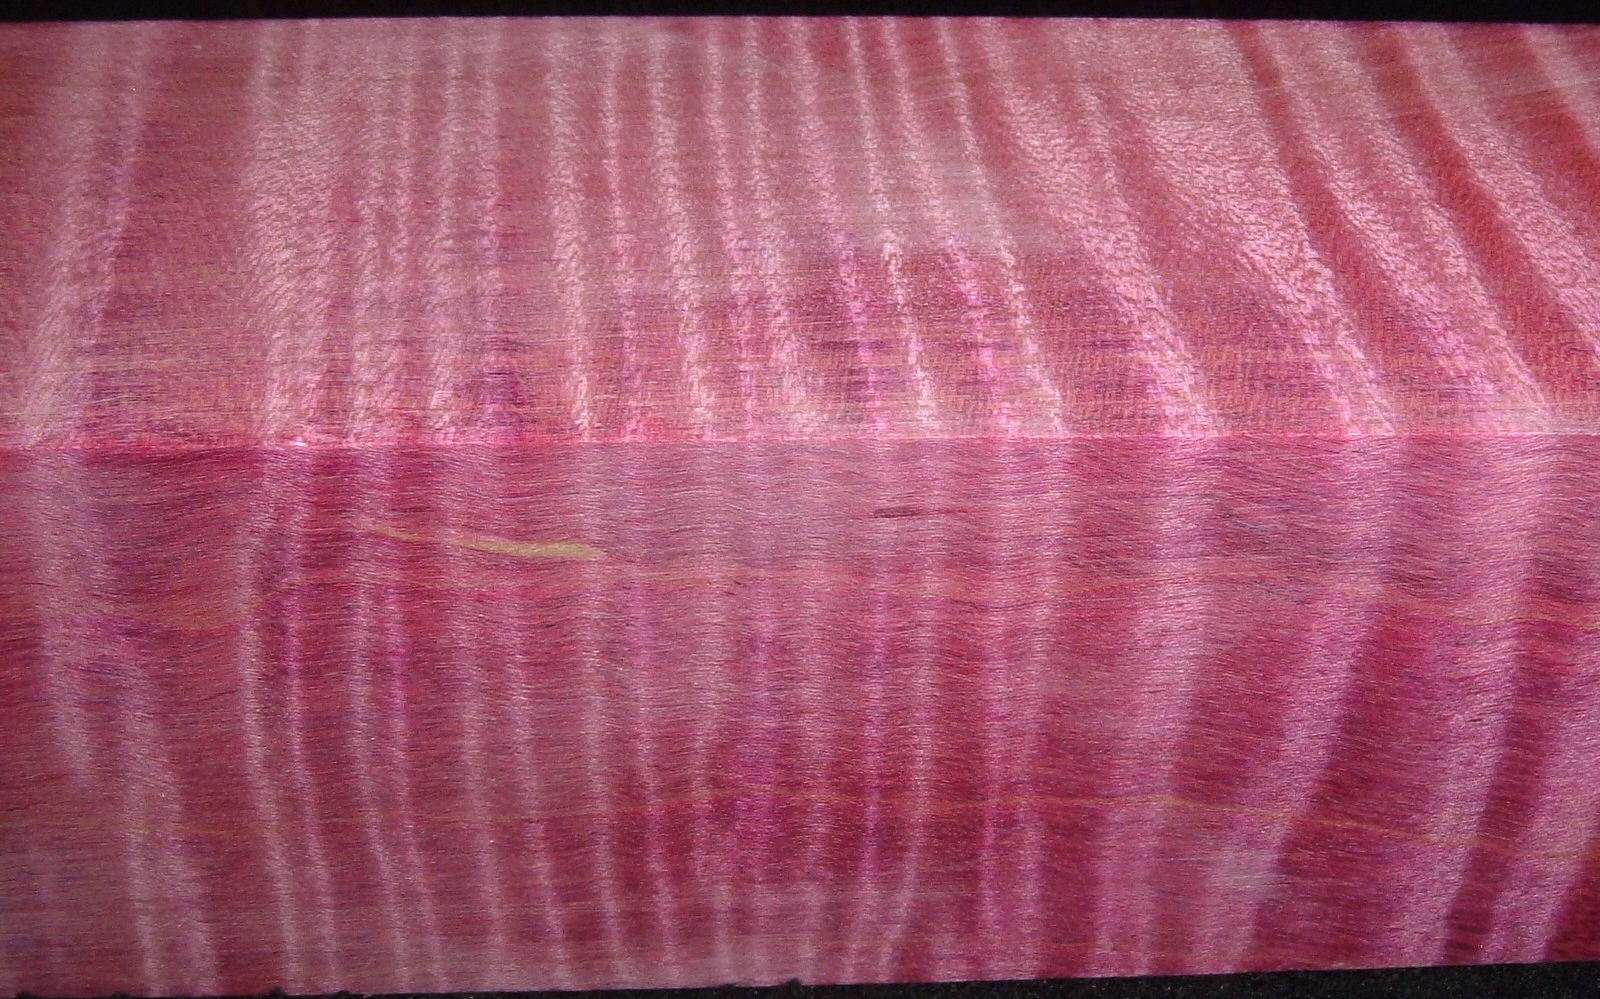 Z398, Curly Tiger Maple Dyed Stabilized, wood turning block, Magenta, 1-3/4x1-3/4x6-1/2